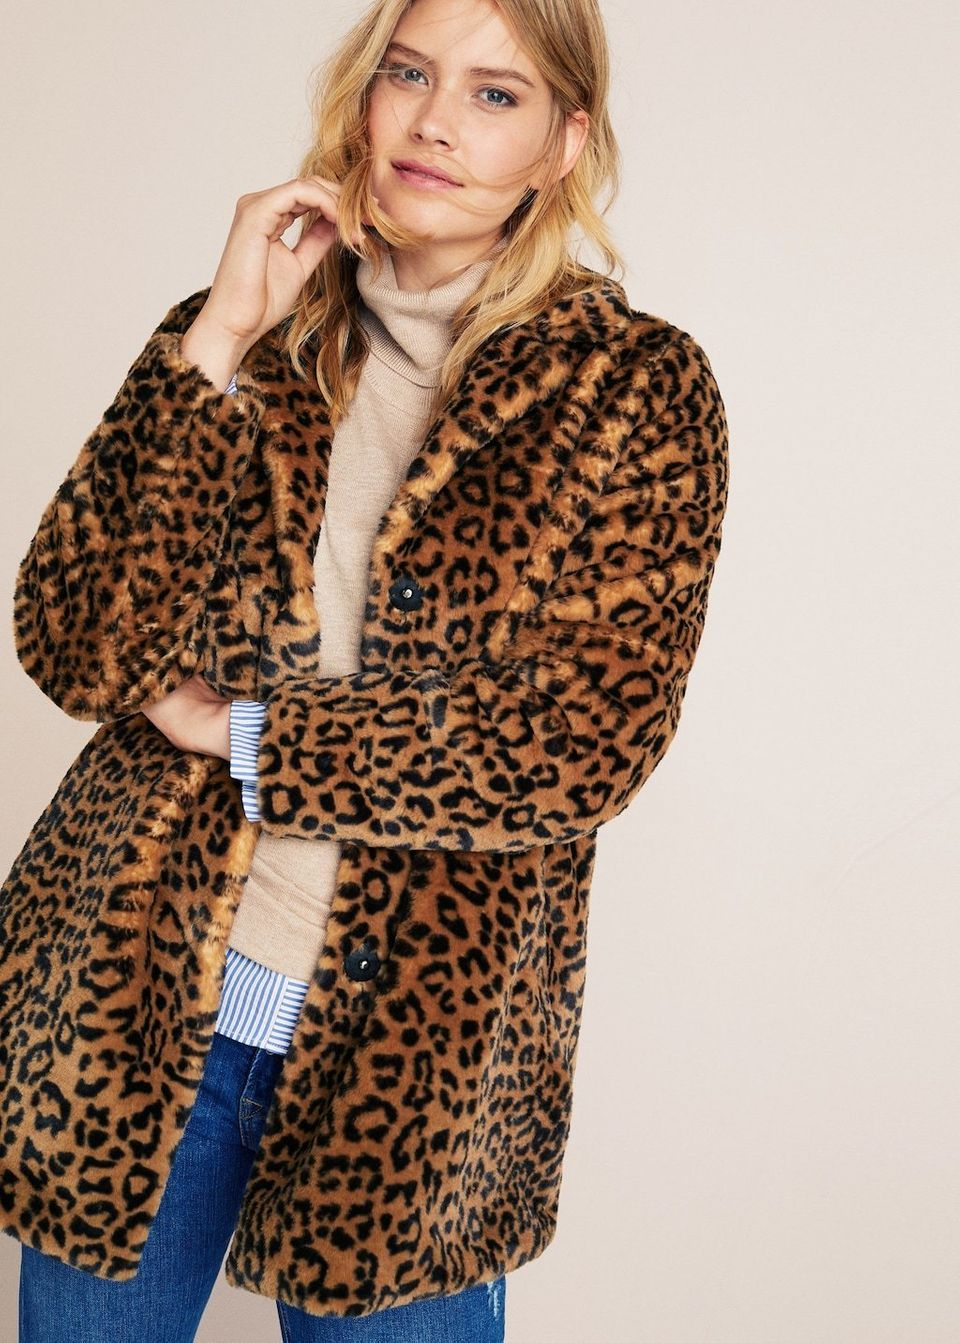 927084f290c 10 Cheap Leopard Print Coats That Don t Look Cheap